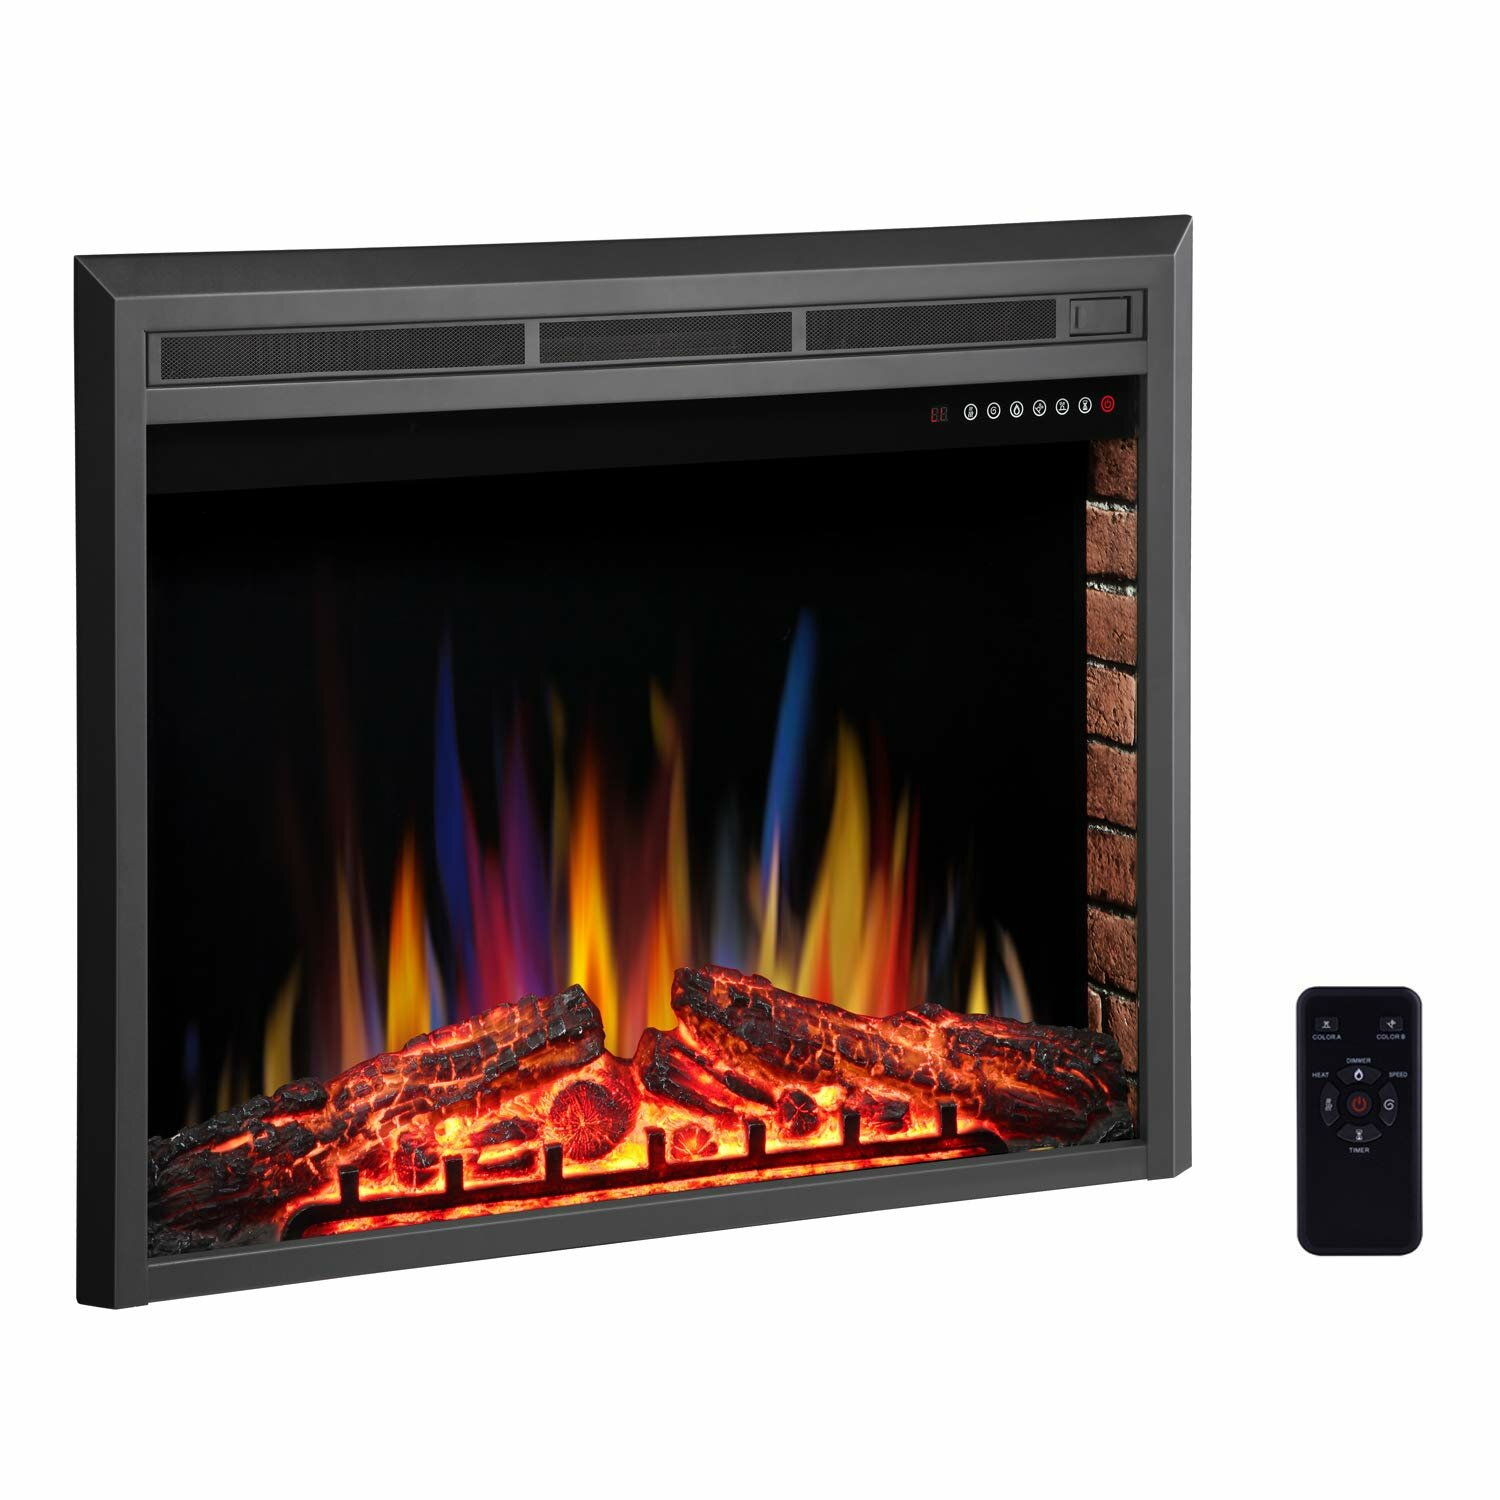 Heating Cooling Air Quality R W Flame Electric Fireplace Mantel Wooden Surround Firebox Free Standing Remote Control Black Adjustable Led Flame Home Kitchen Crewontour Com